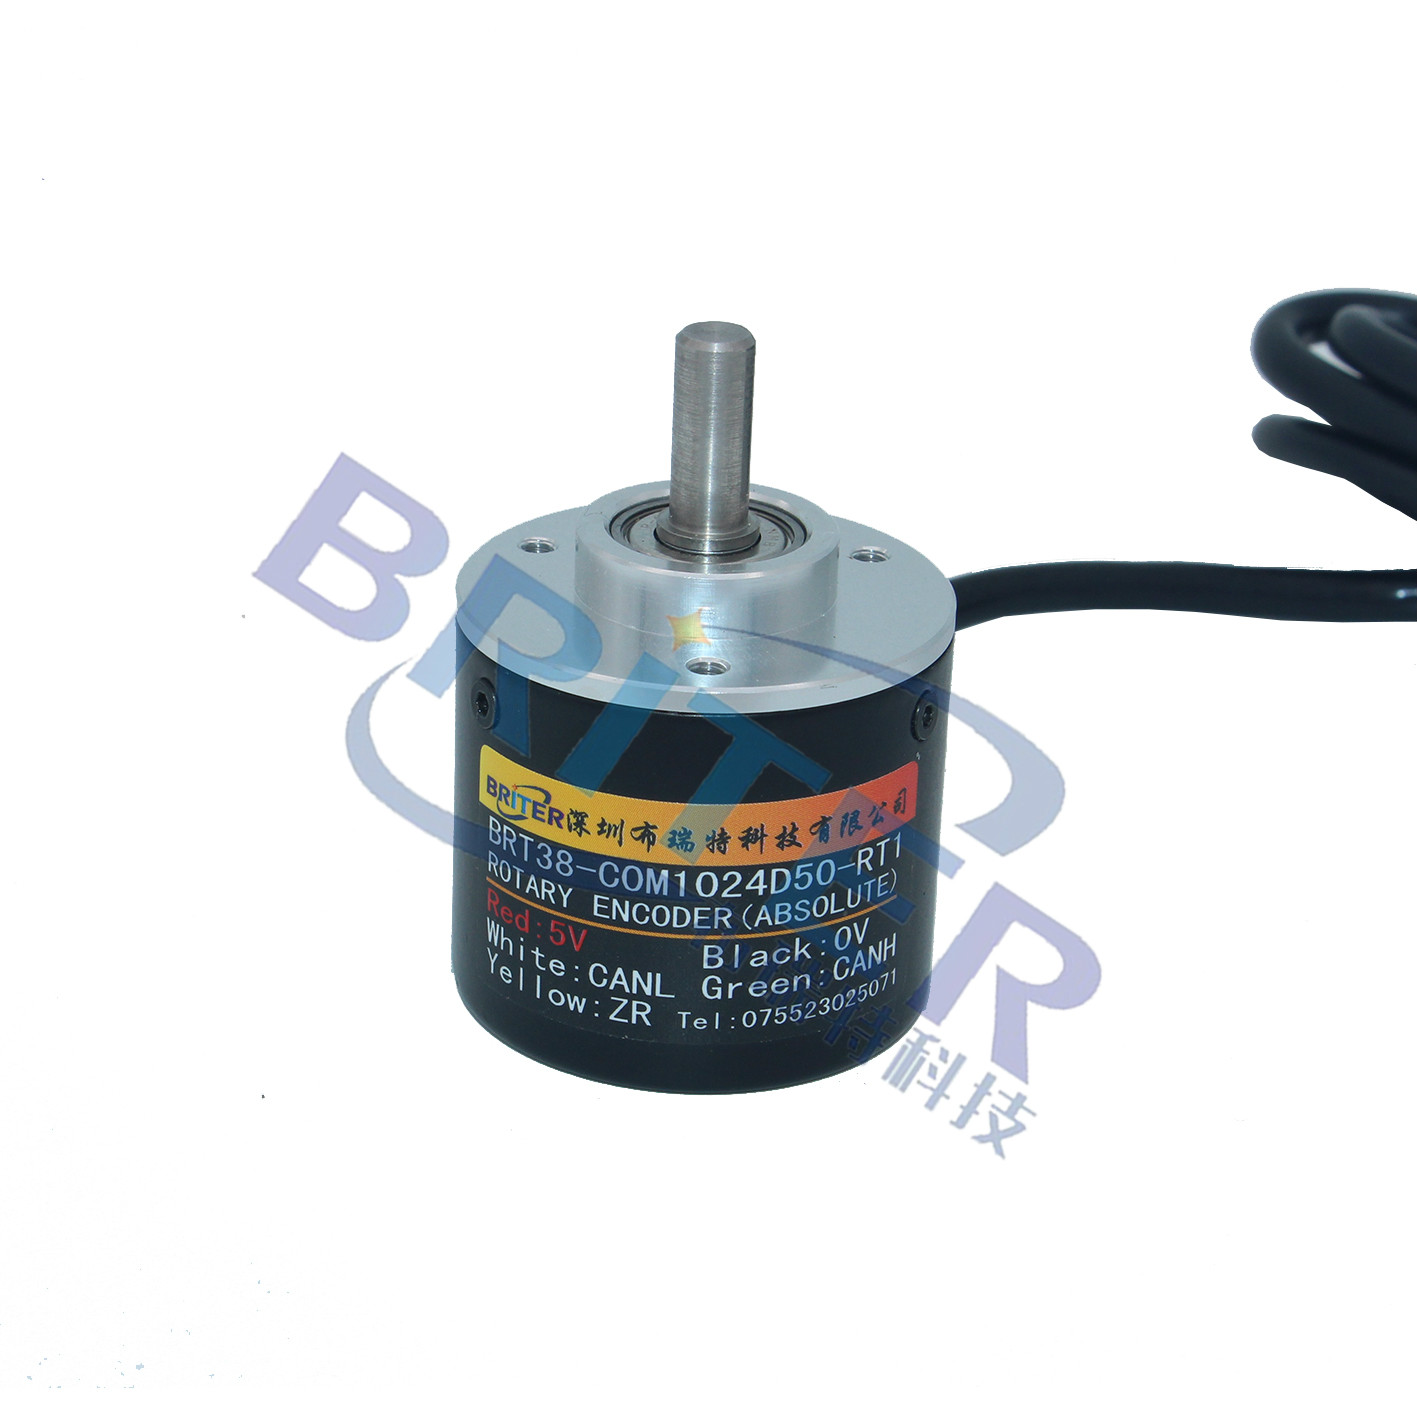 CAN 99-turn 1024 Differential Angle Rotation Absolute Multi-turn Encoder Power-off Memory